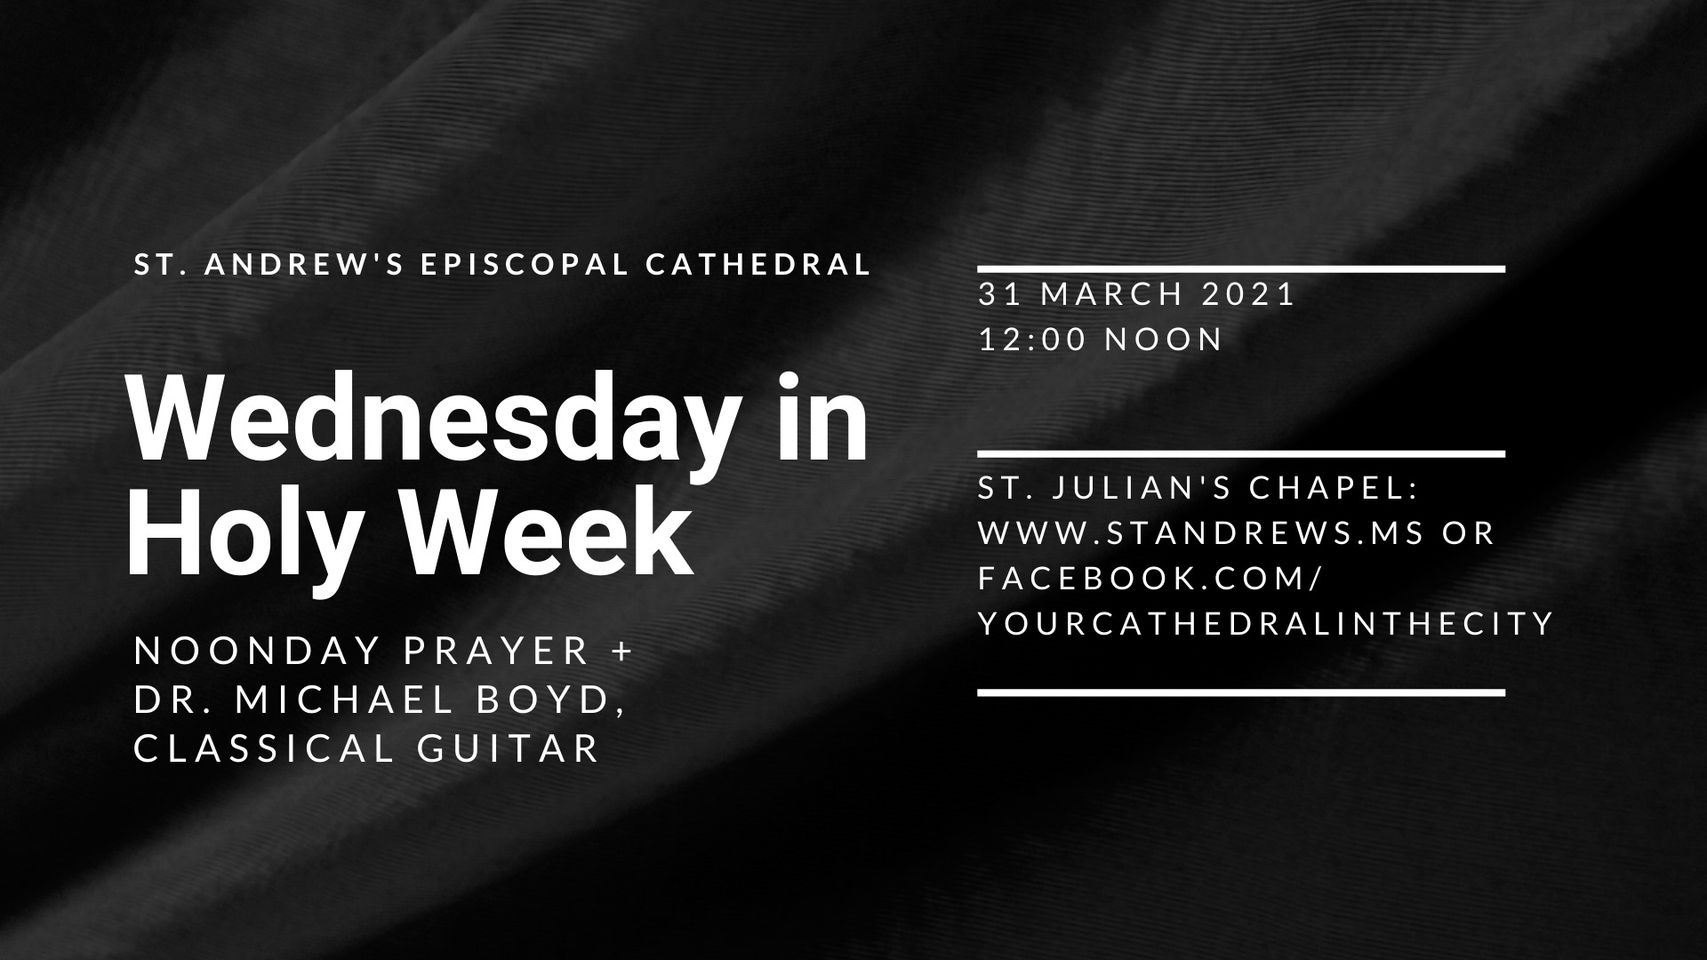 Wednesday in Holy Week: Noonday Prayer + Dr. Michael Boyd, classical guitar